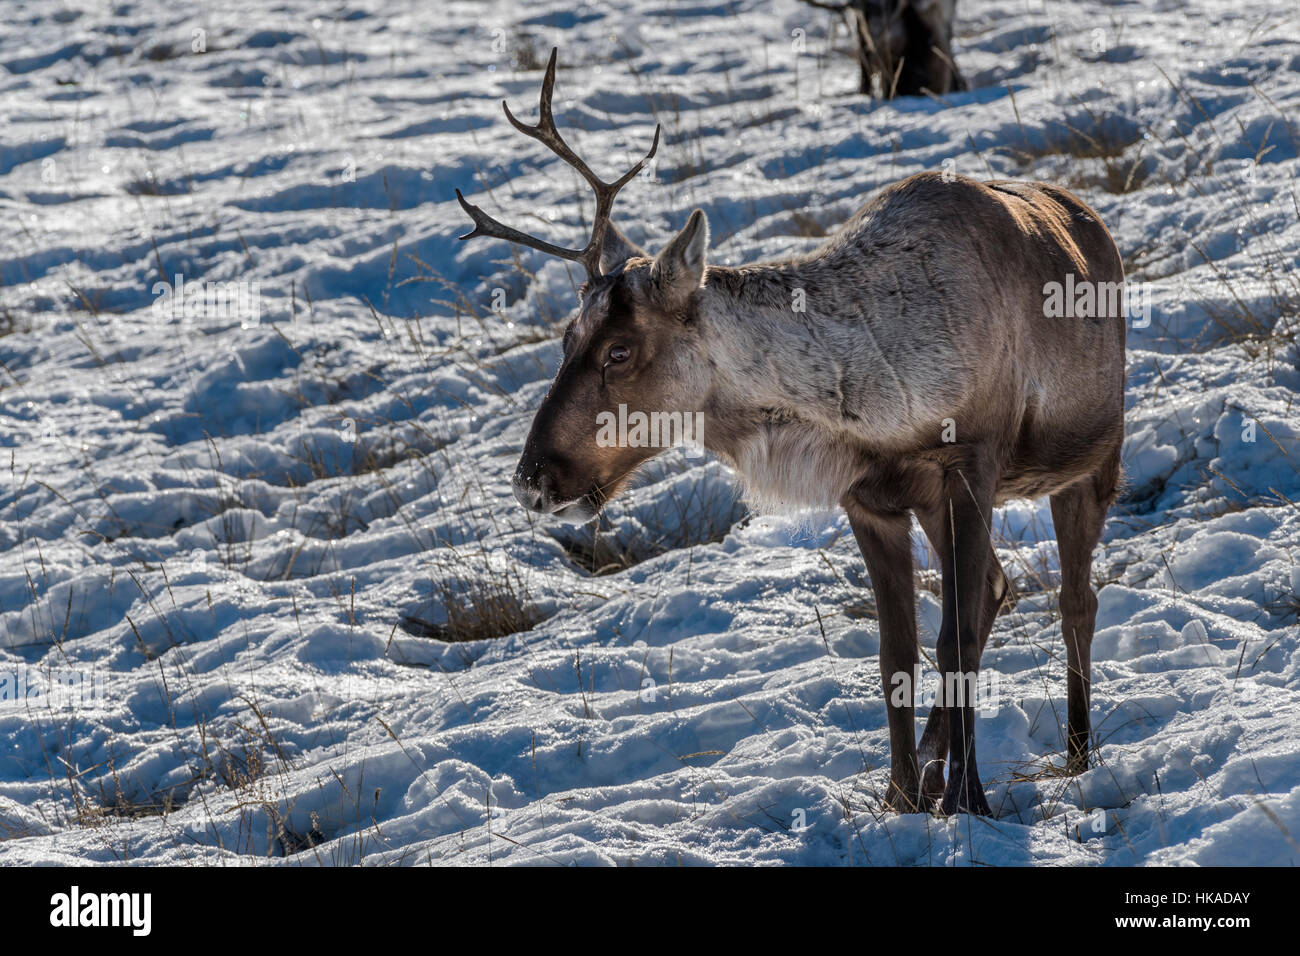 One-horned Boreal Woodland Caribou in the snow and dried grasses, near Whitehorse, Yukon Territory - Stock Image